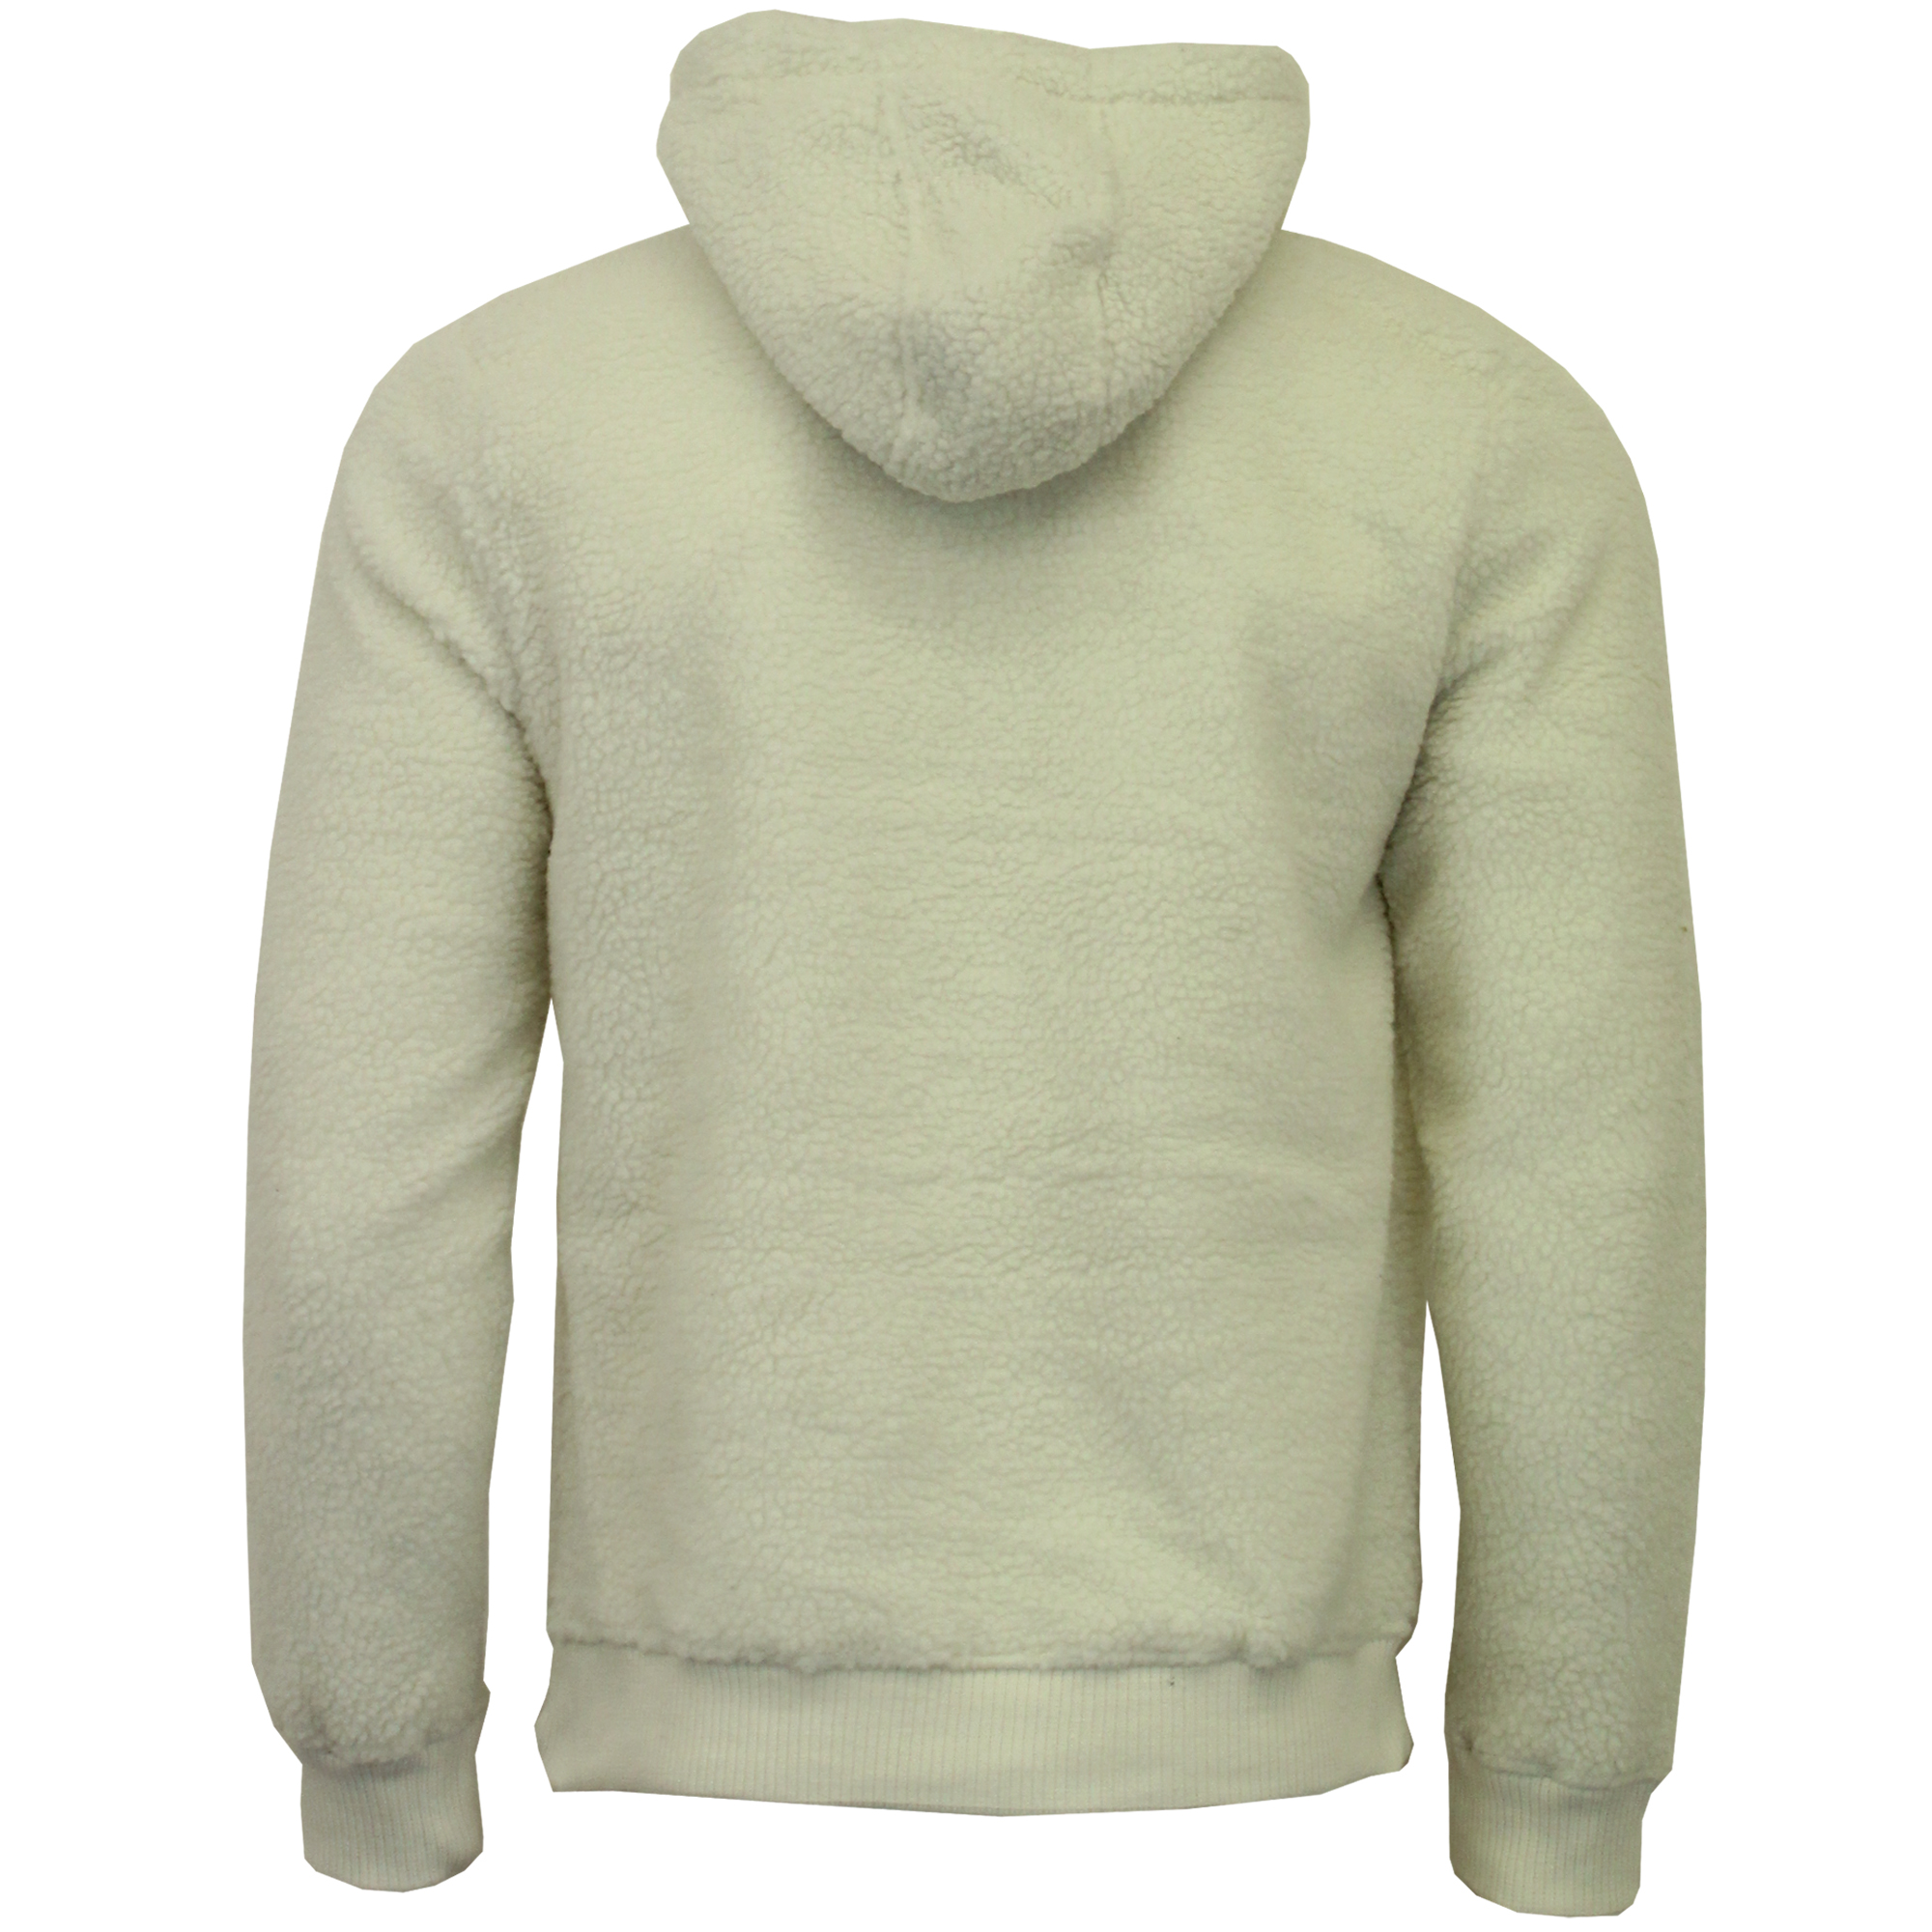 Mens-Borg-Sherpa-Fleece-Sweatshirt-Brave-Soul-DAIM-Over-The-Head-Hooded-Top-Warm thumbnail 3